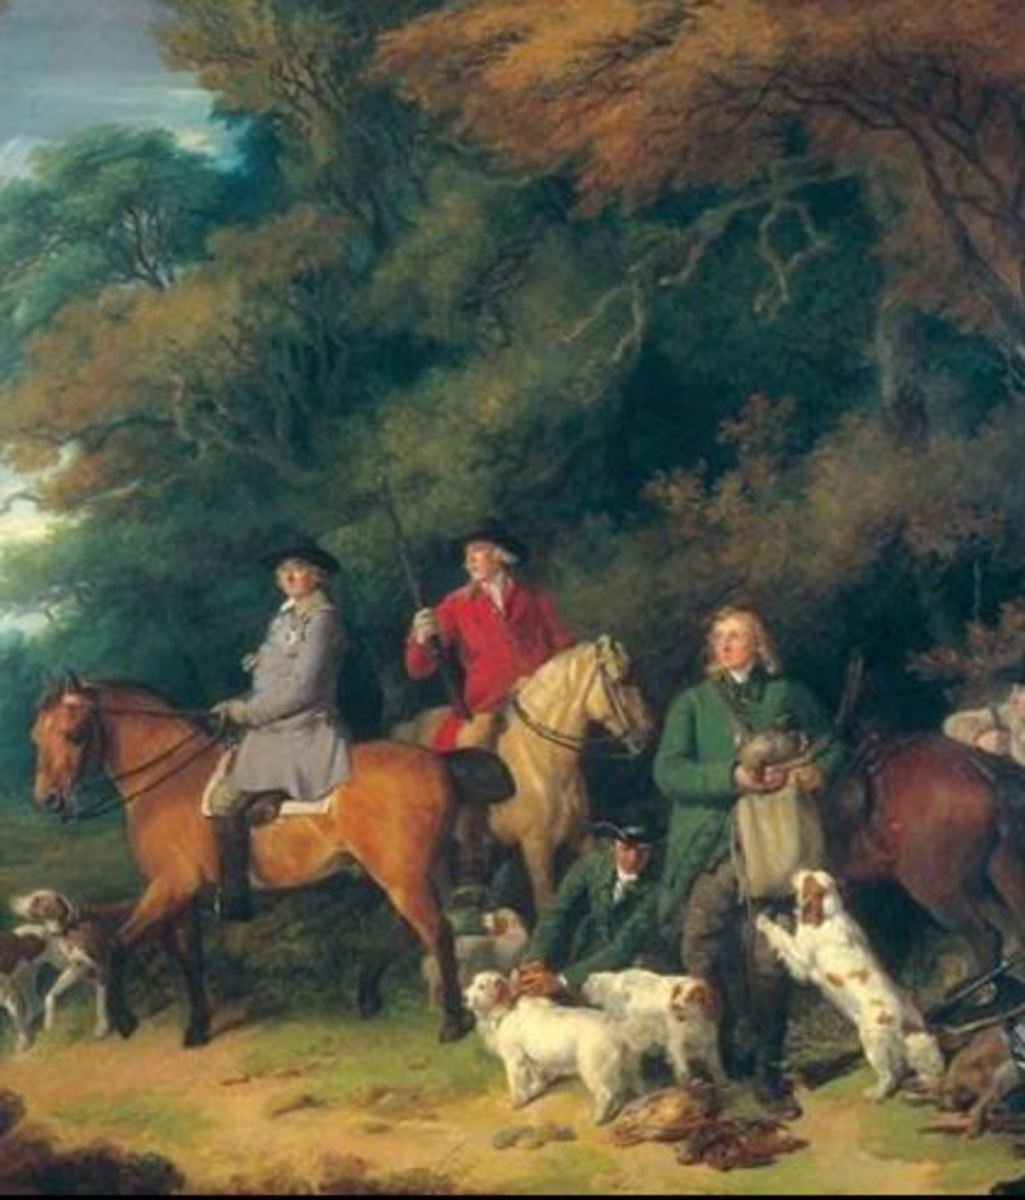 Francis Wheatly painting, Duke of Newcastle seated on his horse and four Clumber Spaniels.